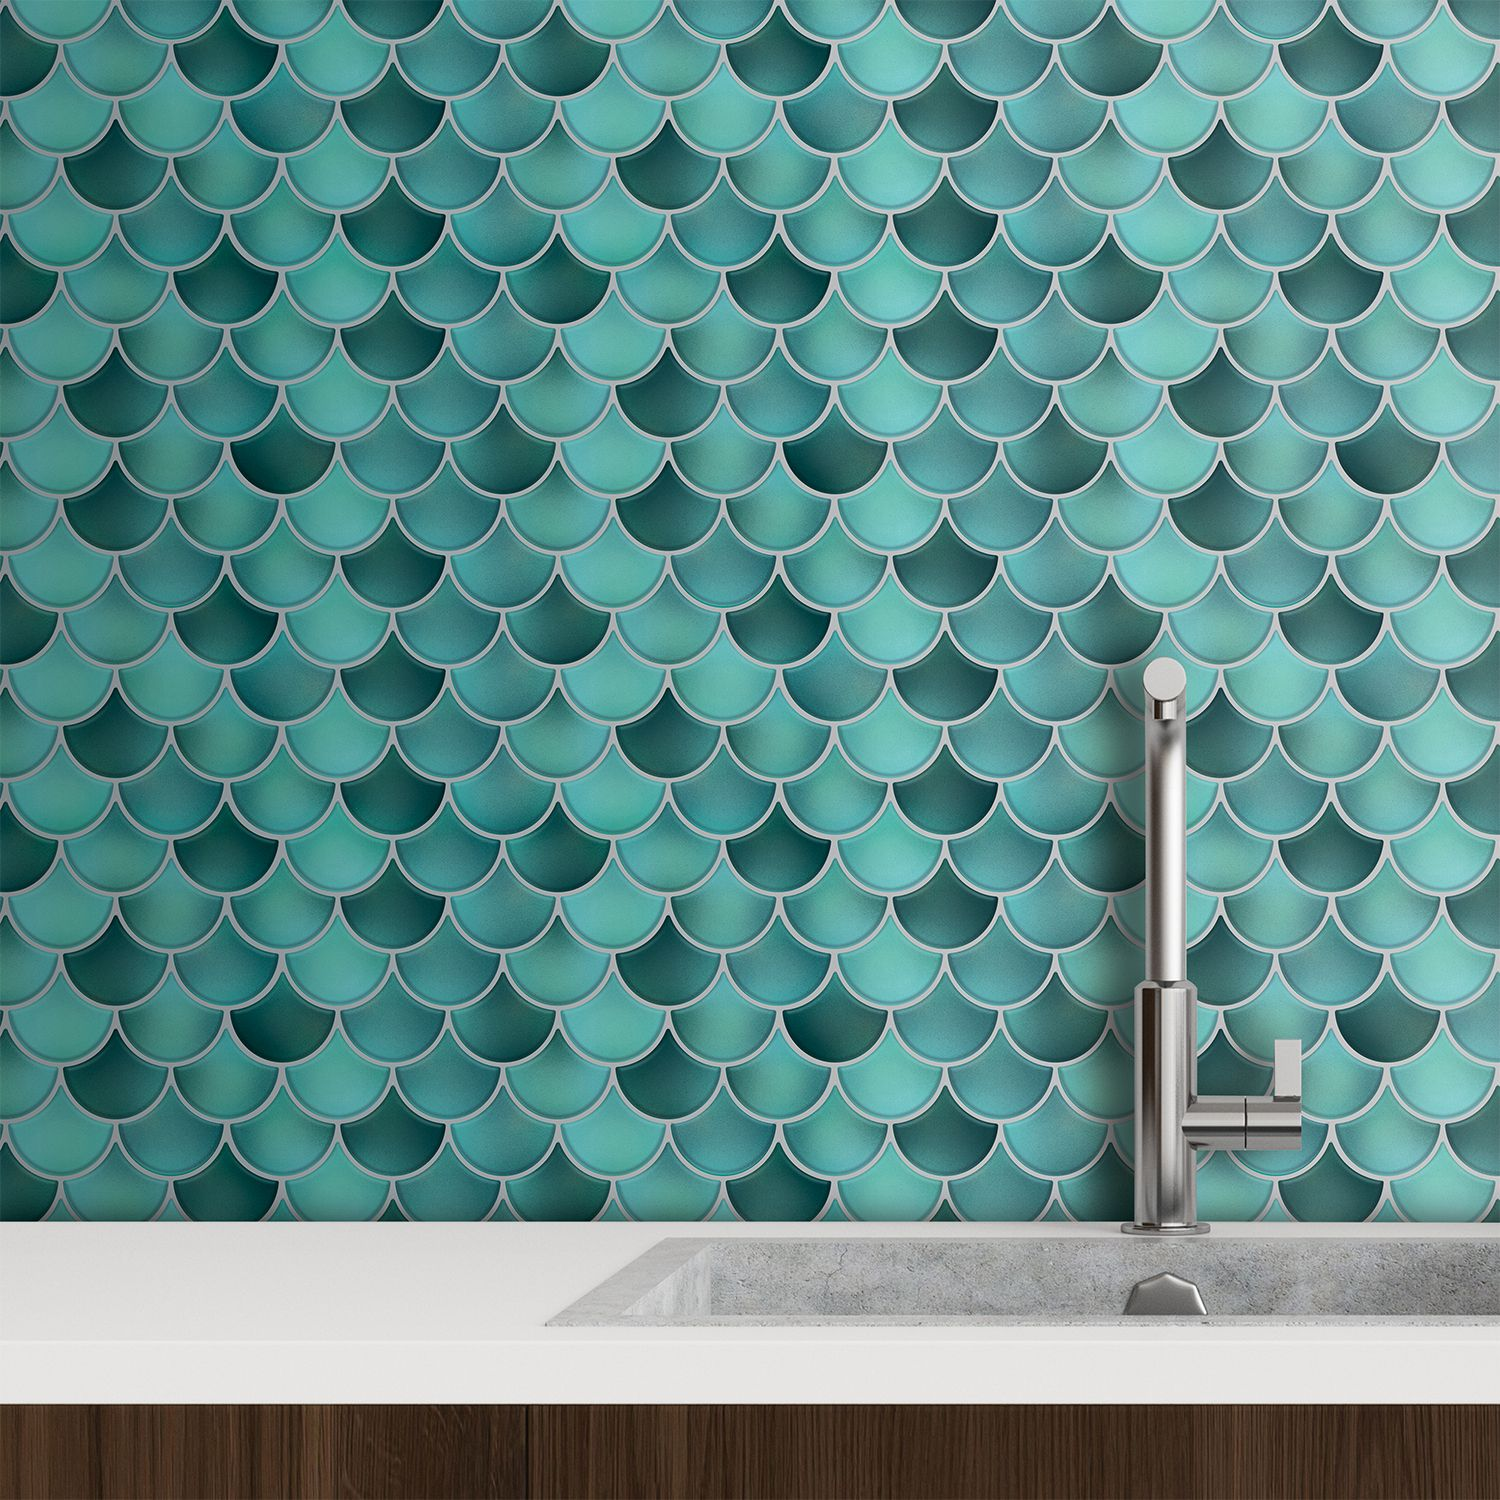 Fresh Turquoise Glossy 3D Metro Sticker Tiles 30 x 30cm Contemporary Eclectic Wall Splashbacks Mosaics, Self adhesive, Glass Effect, Peel and Stick, Bathroom Decoration, DIY, Kitchen D+®cor